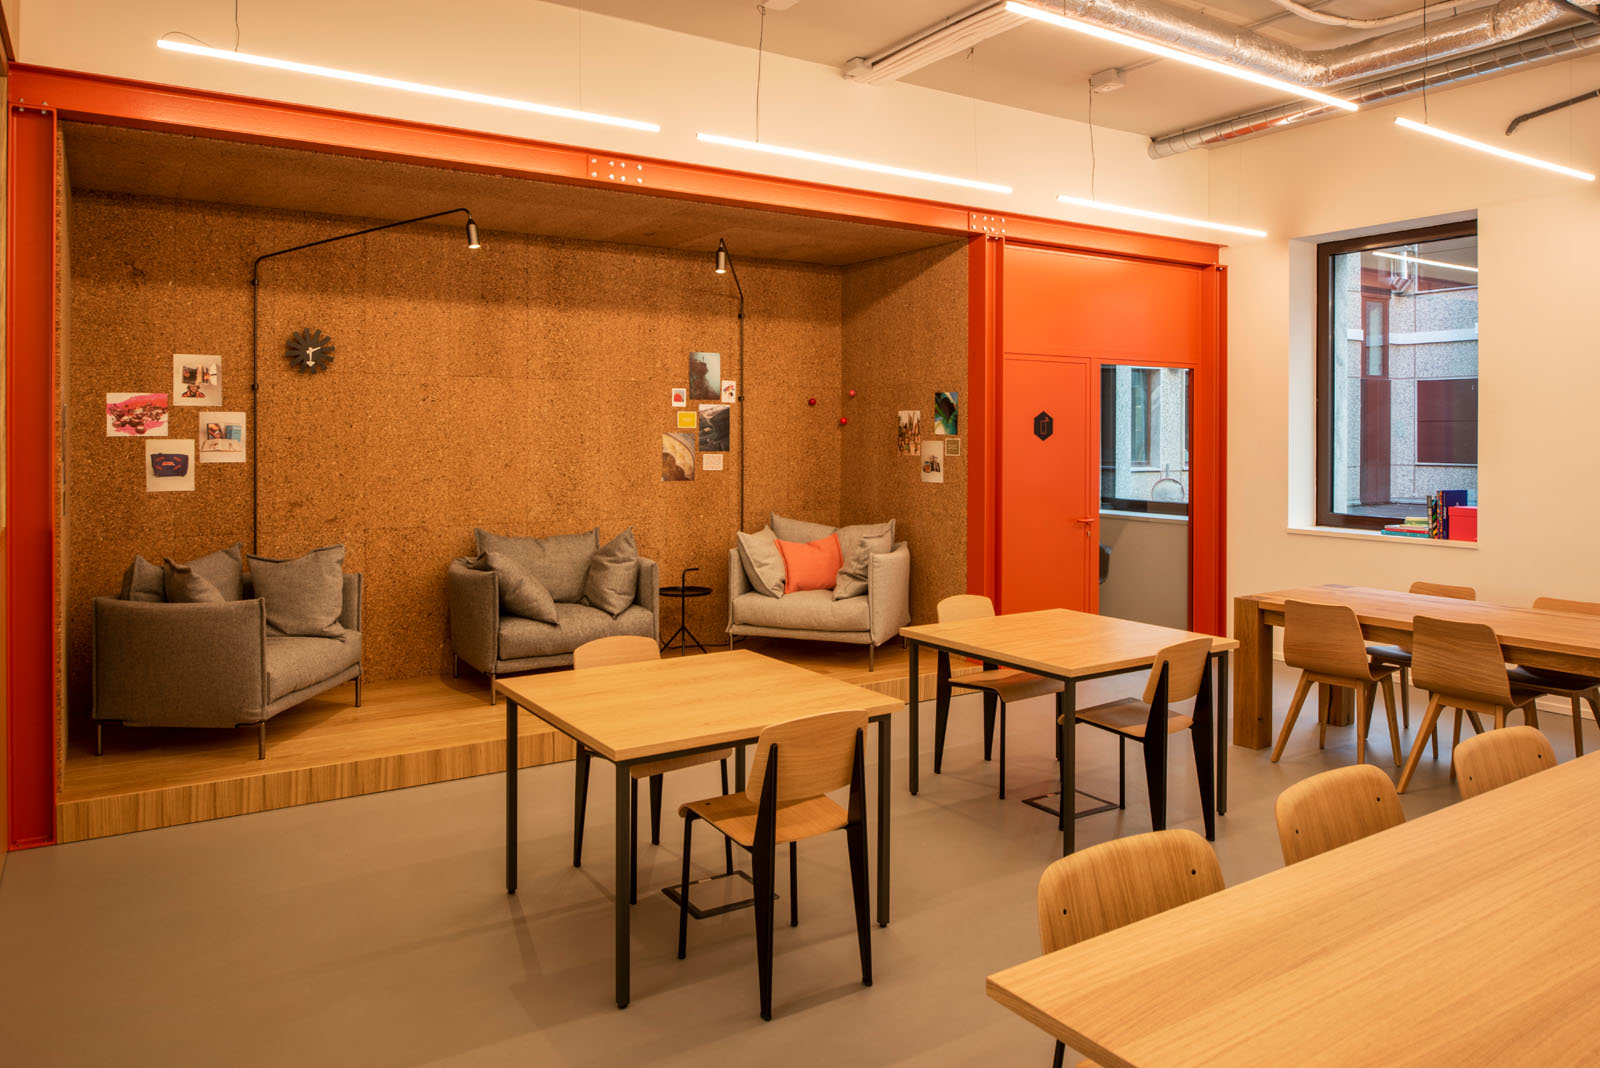 Informal area at Spaces in Milan, Italy